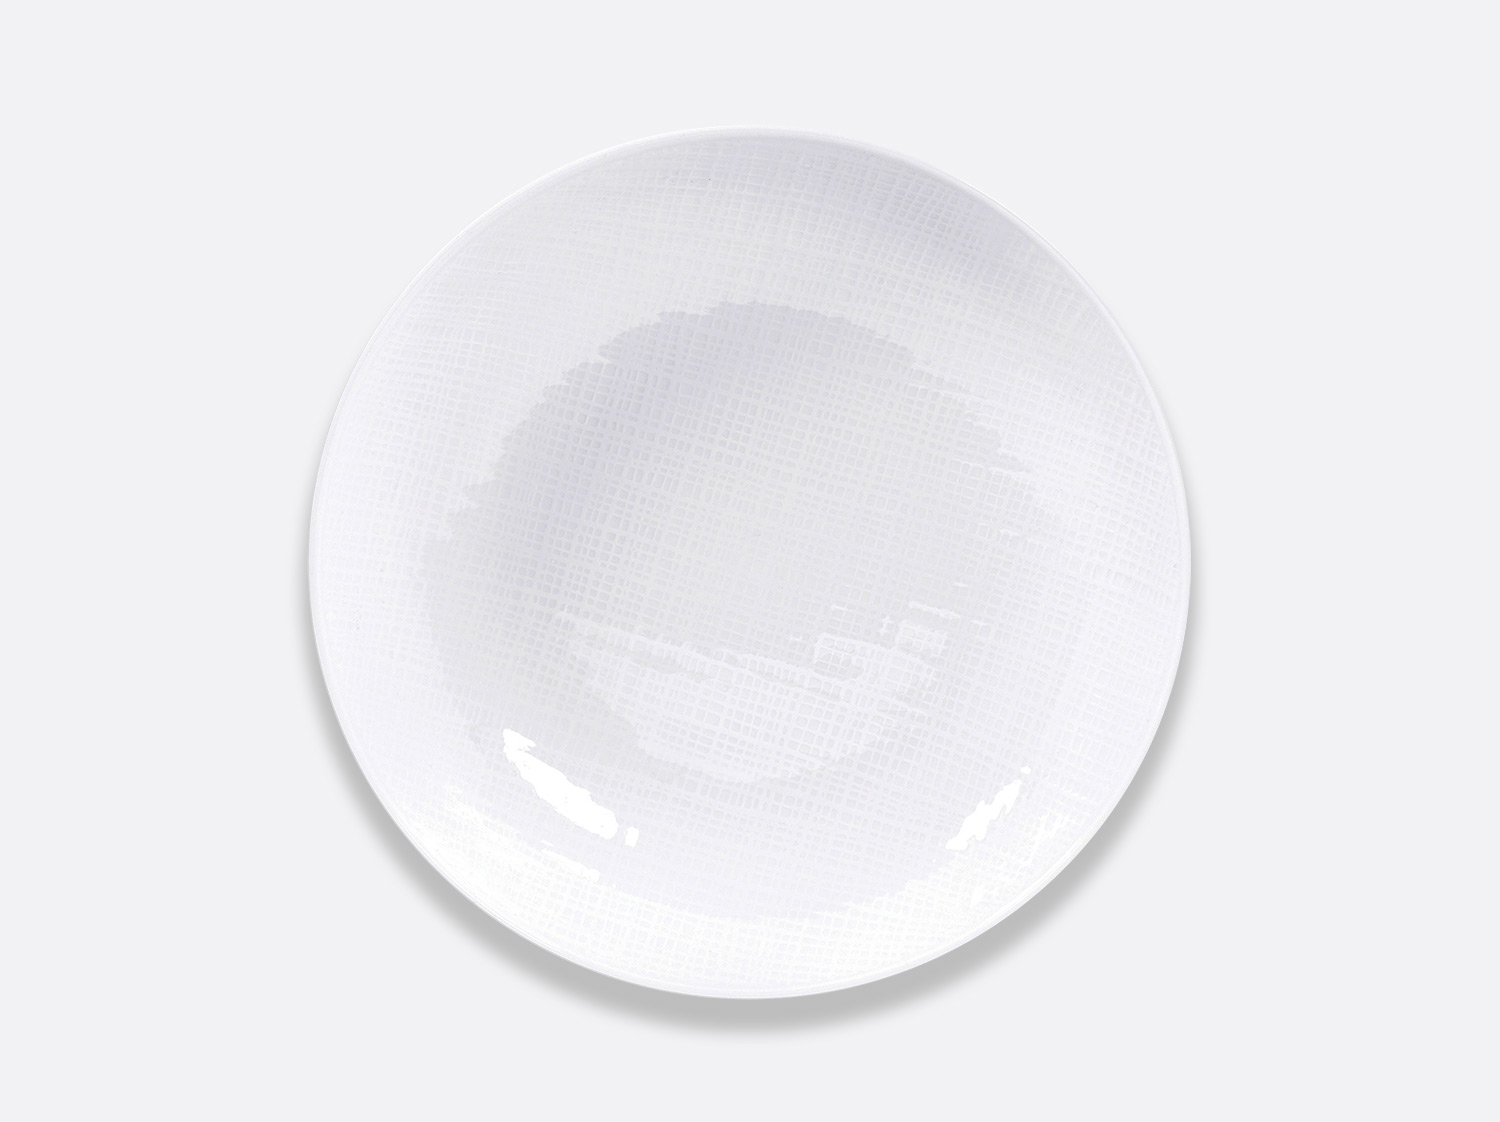 China Open vegetable dish 24 cm 80 cl of the collection Organza | Bernardaud